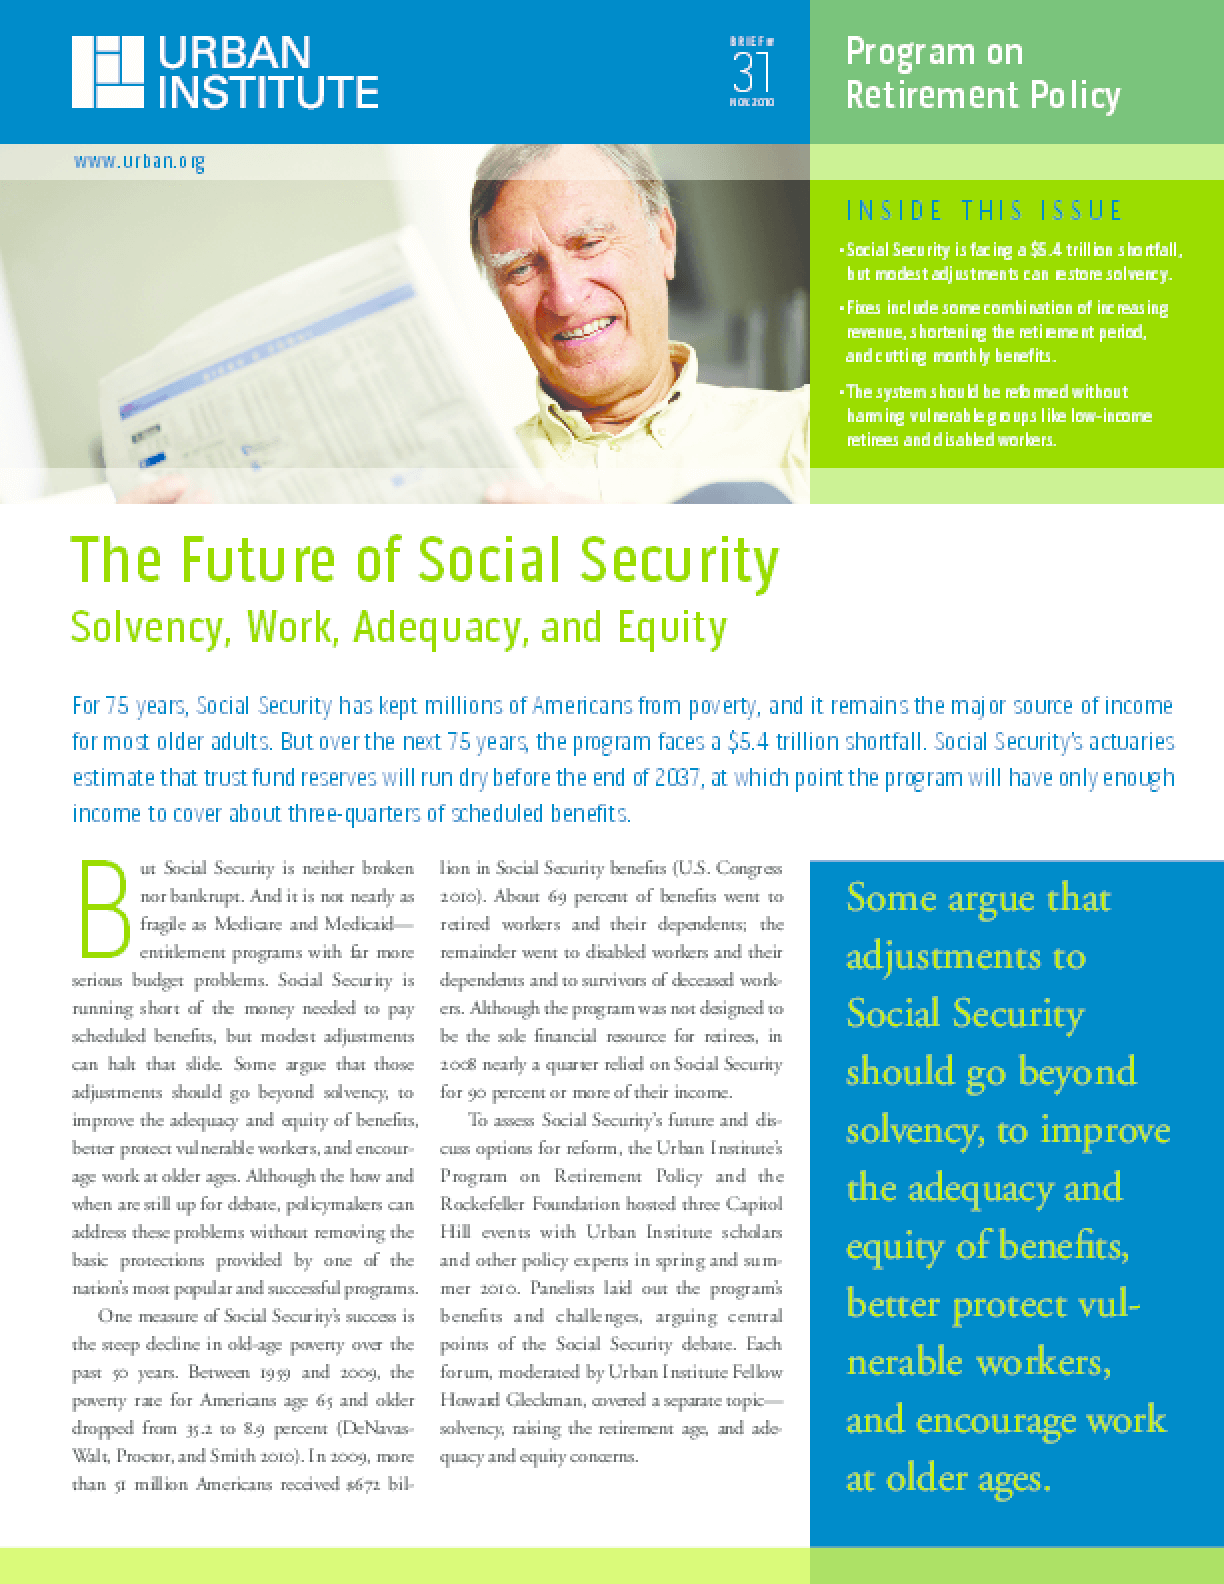 The Future of Social Security: Solvency, Work, Adequacy, and Equity